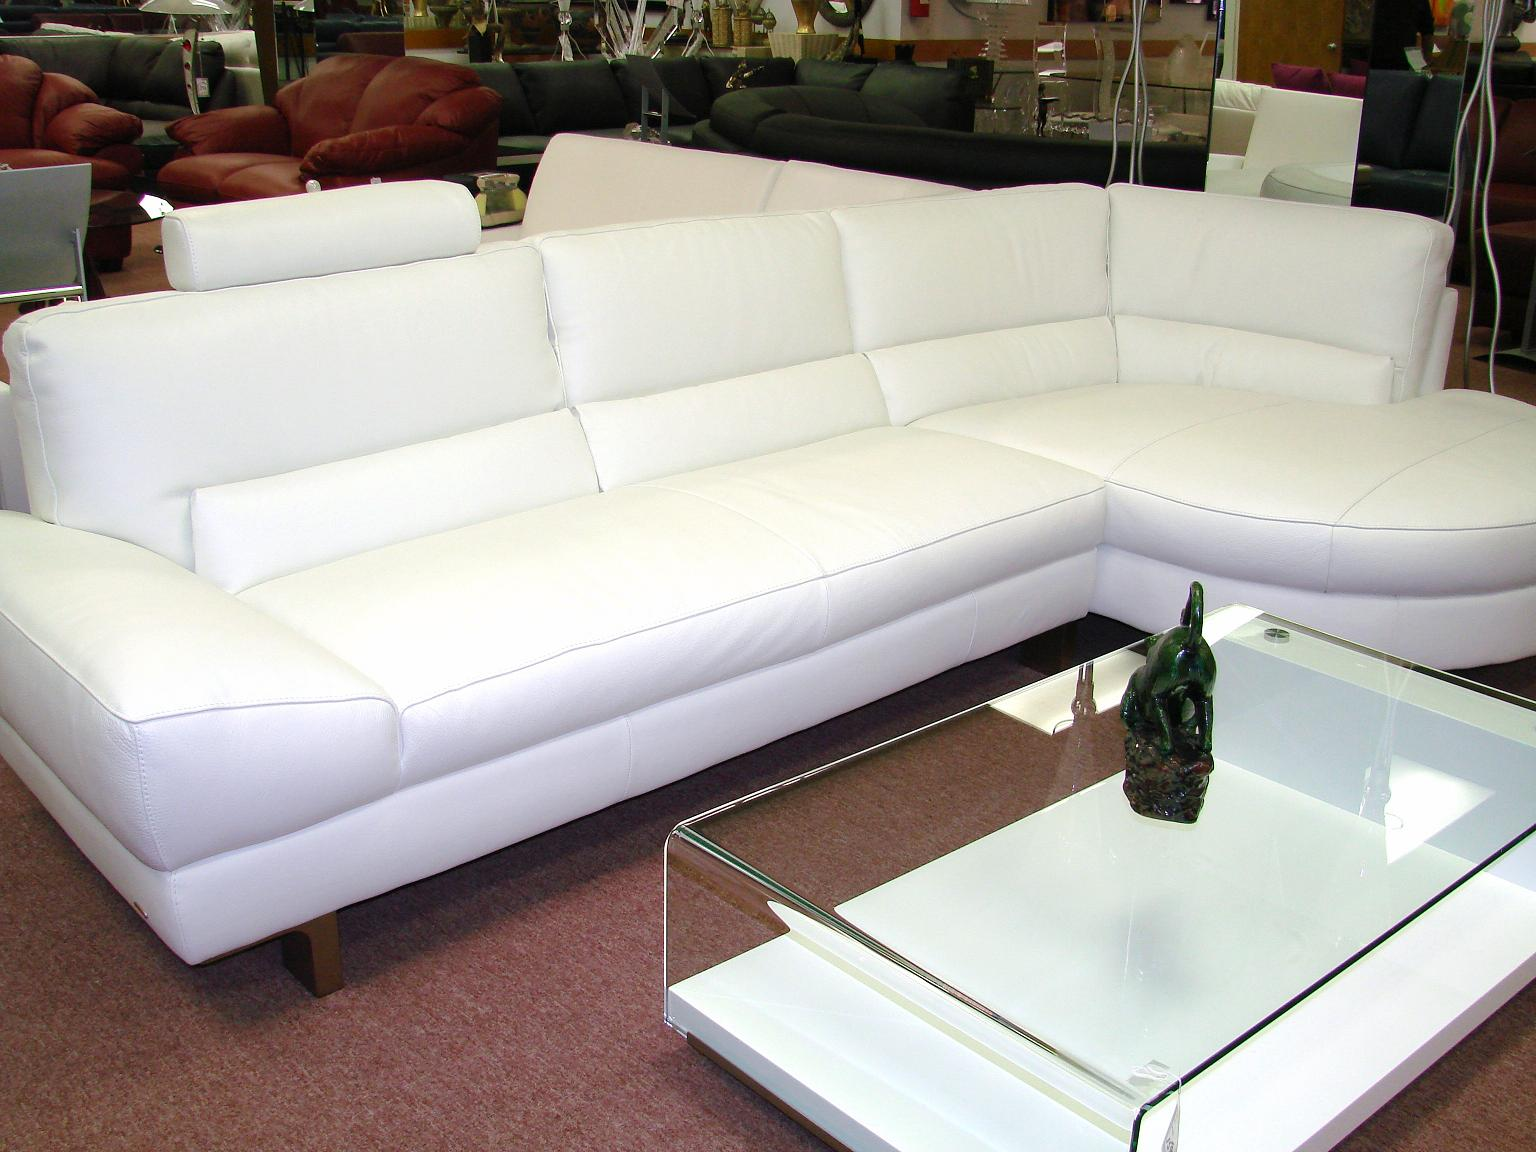 Natuzzi Leather Sectional | 1536 x 1152 · 182 kB · jpeg